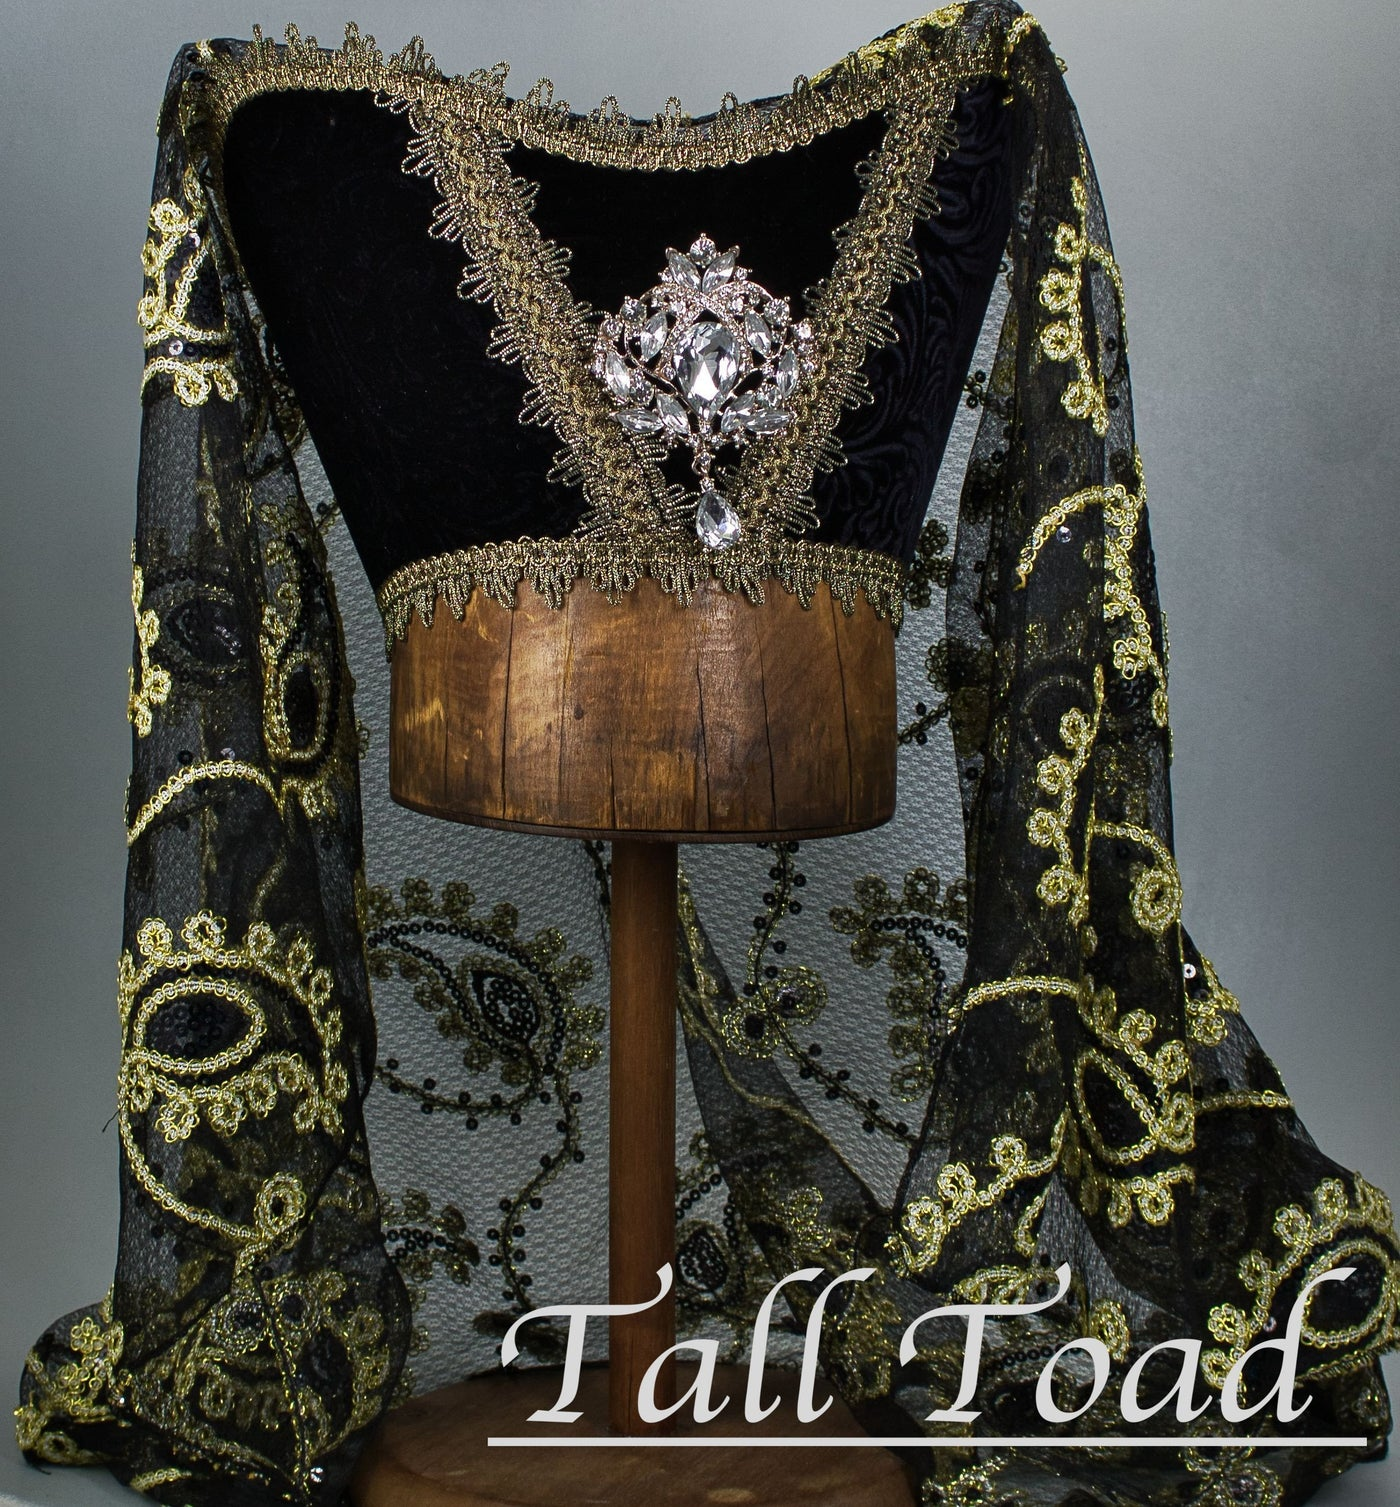 Fancy Horned Headdress - Black Velvet / Black Gold Sequin Veil / Ice Jewel - Tall Toad